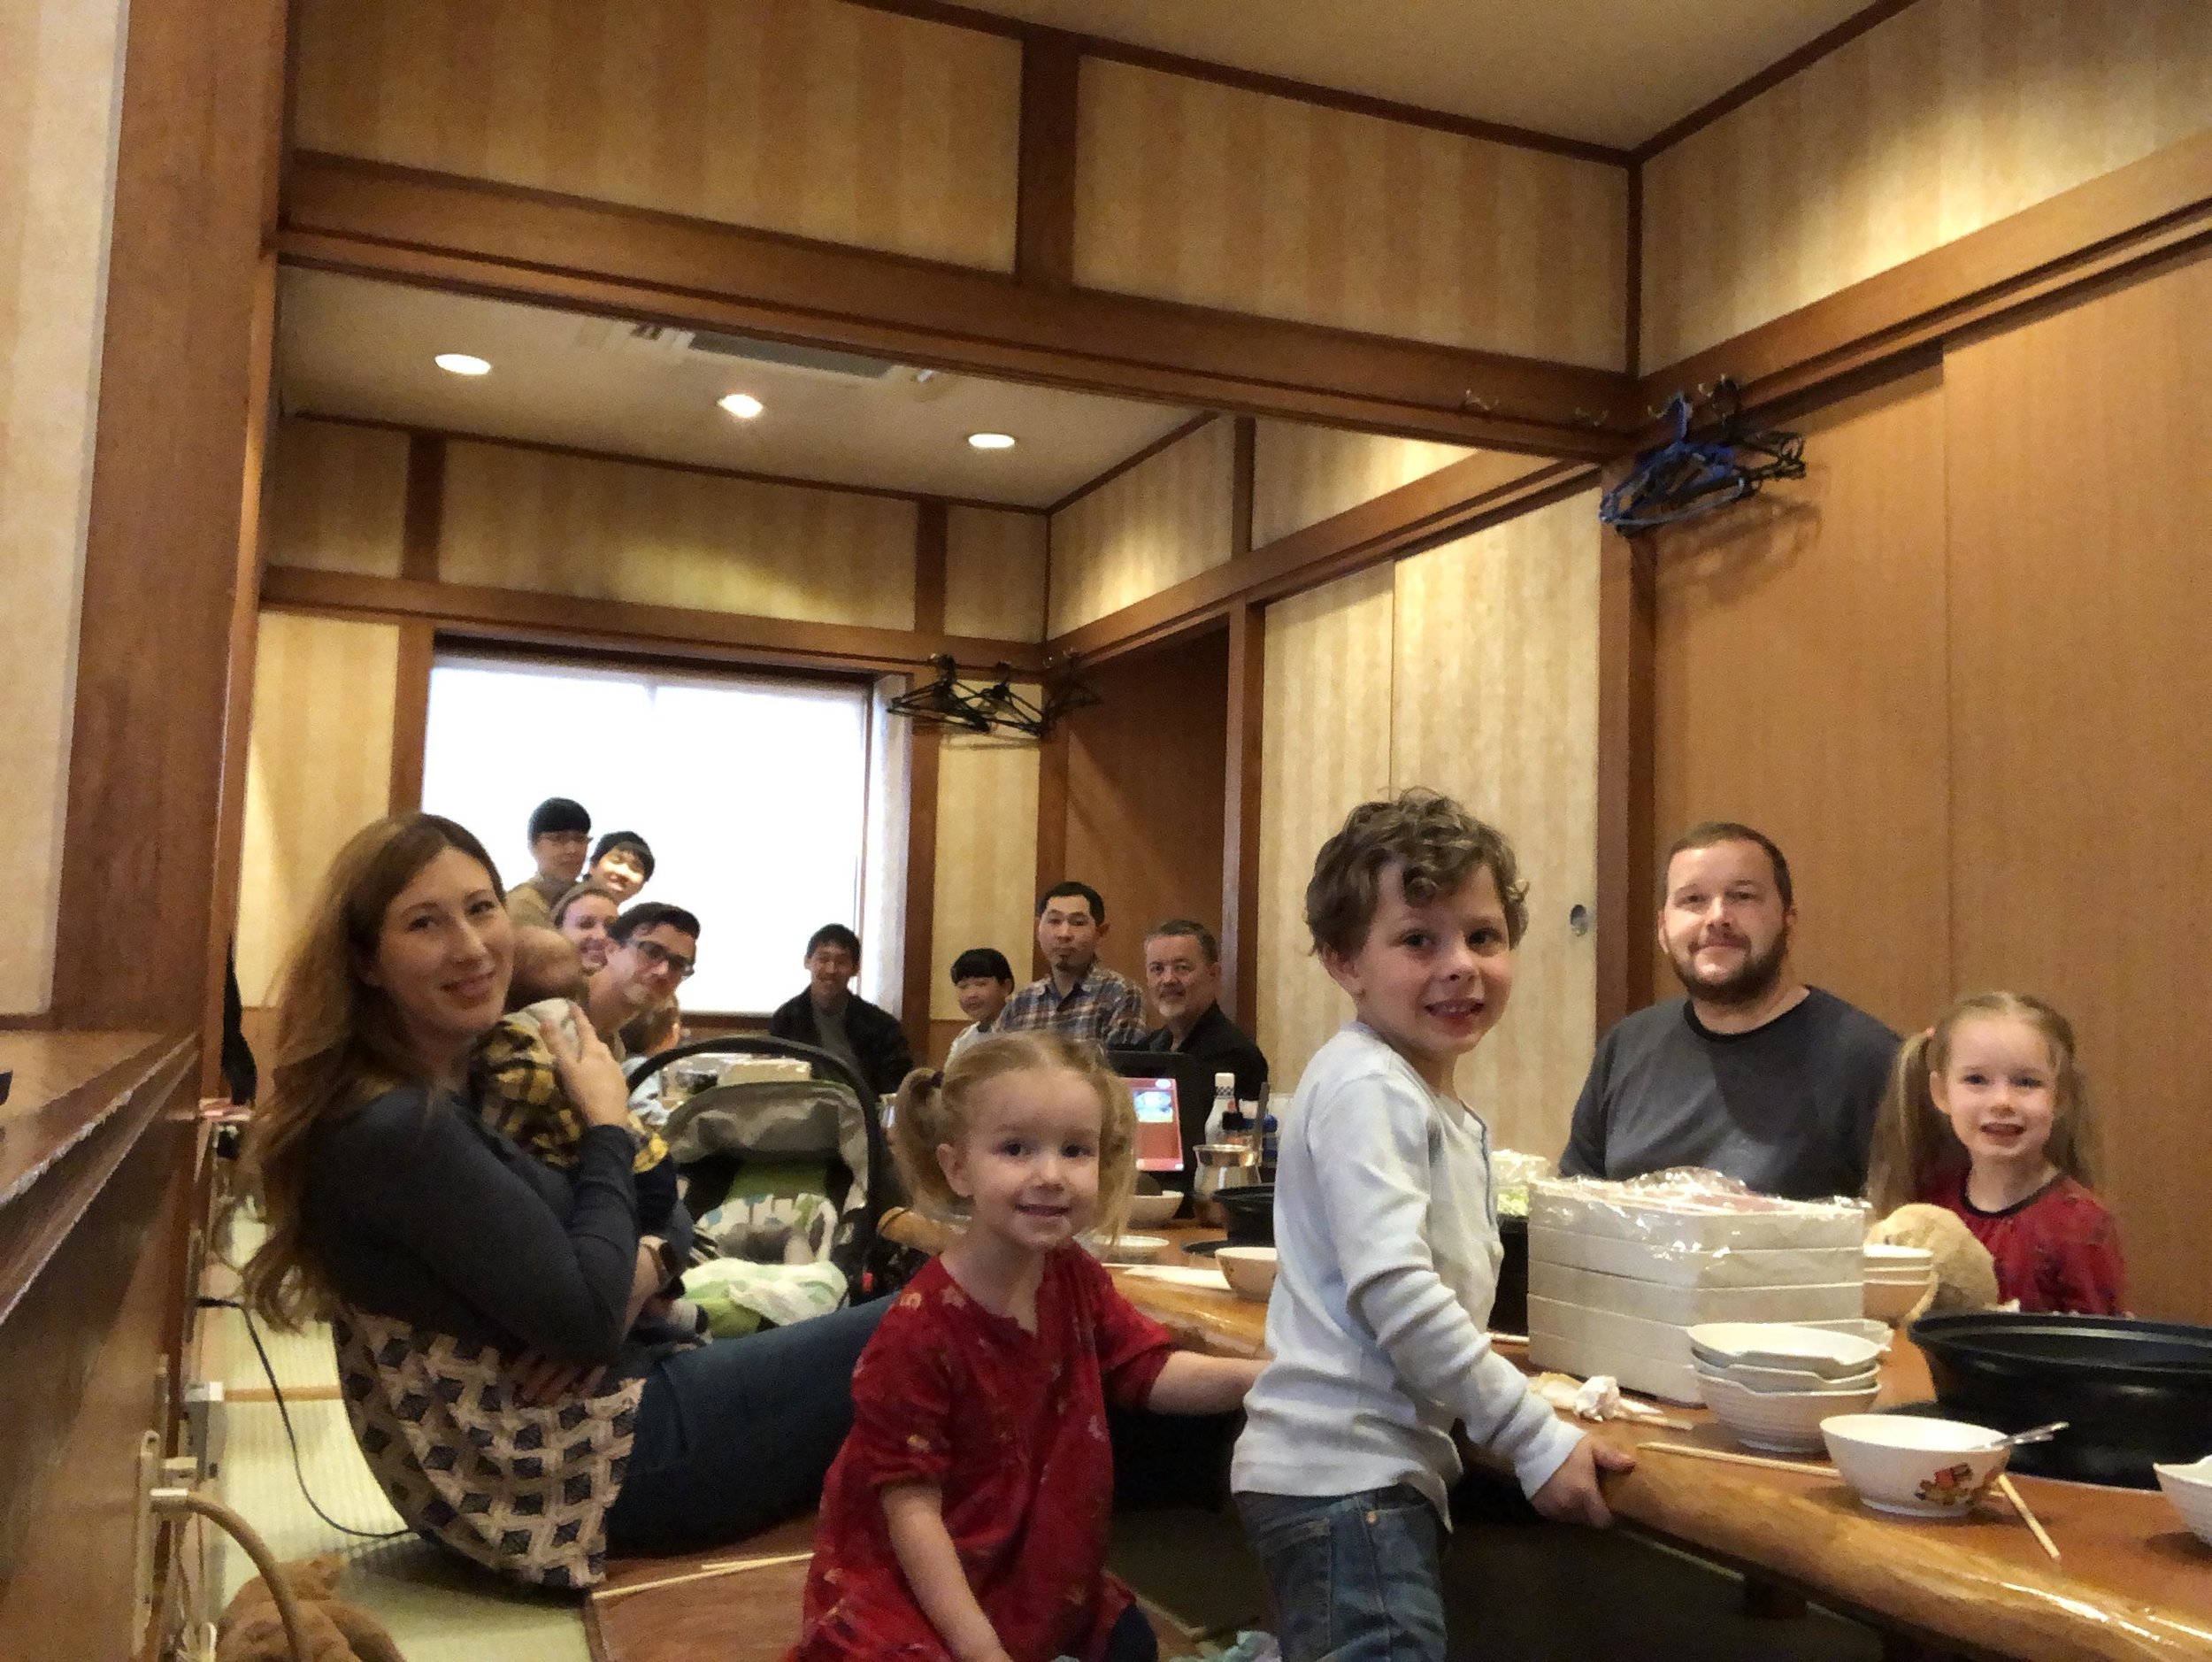 Here we are sharing a traditional Japanese meal with a pastor and his family. Japanese like to eat their meals sitting down on comfortable Tatami mats.